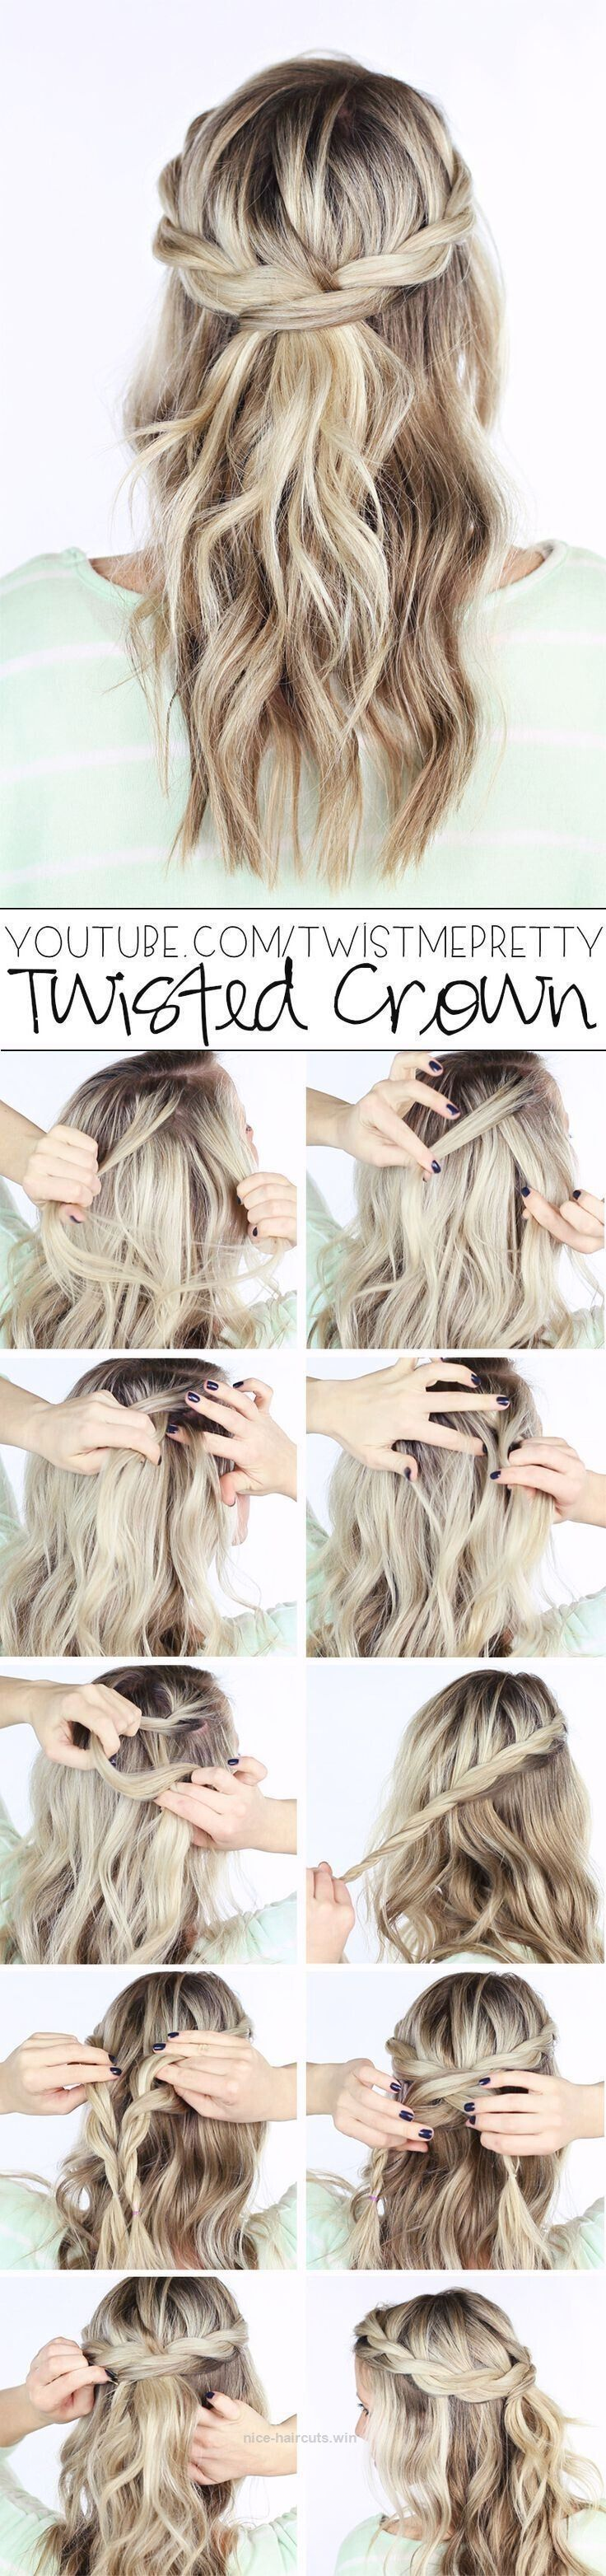 462 best Wedding Hairstyles images on Pinterest